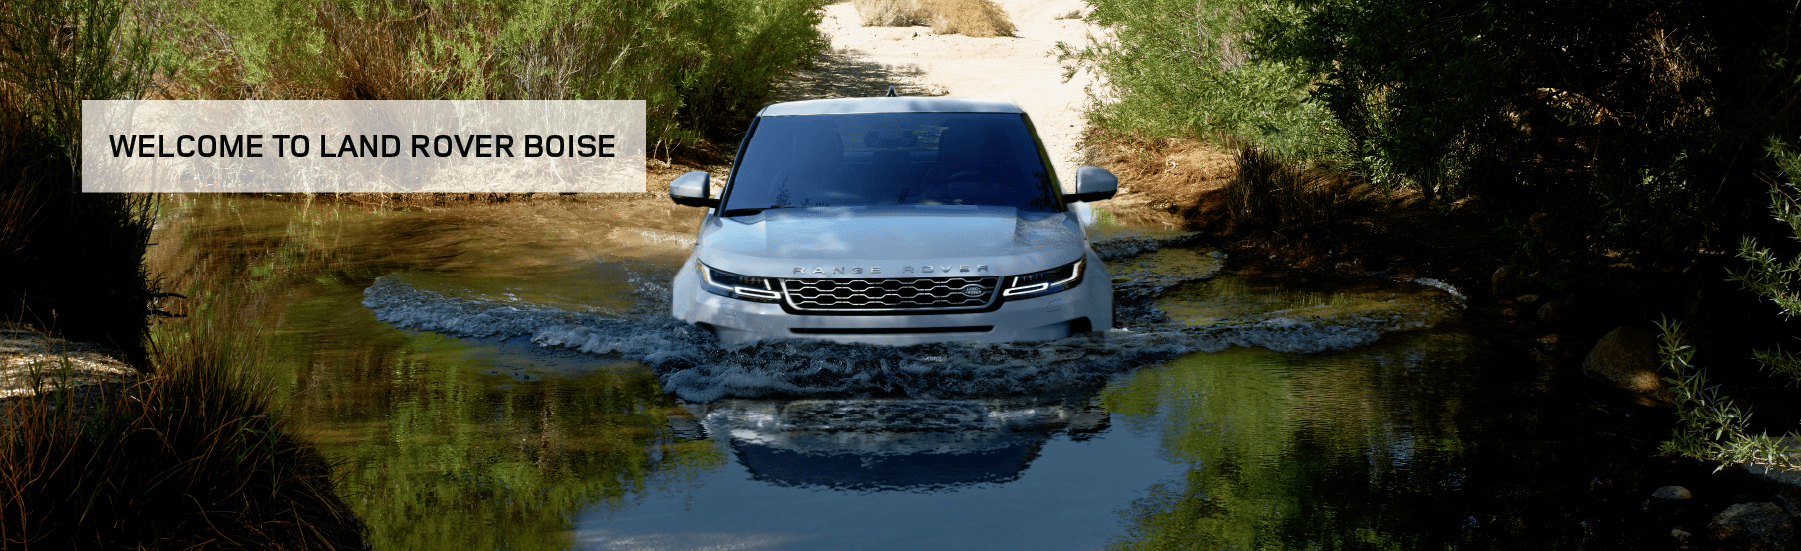 WELCOME TO LAND ROVER BOISE. WHITE RANGE ROVER EVOQUE DRIVING INTO LAKE IN FOREST.